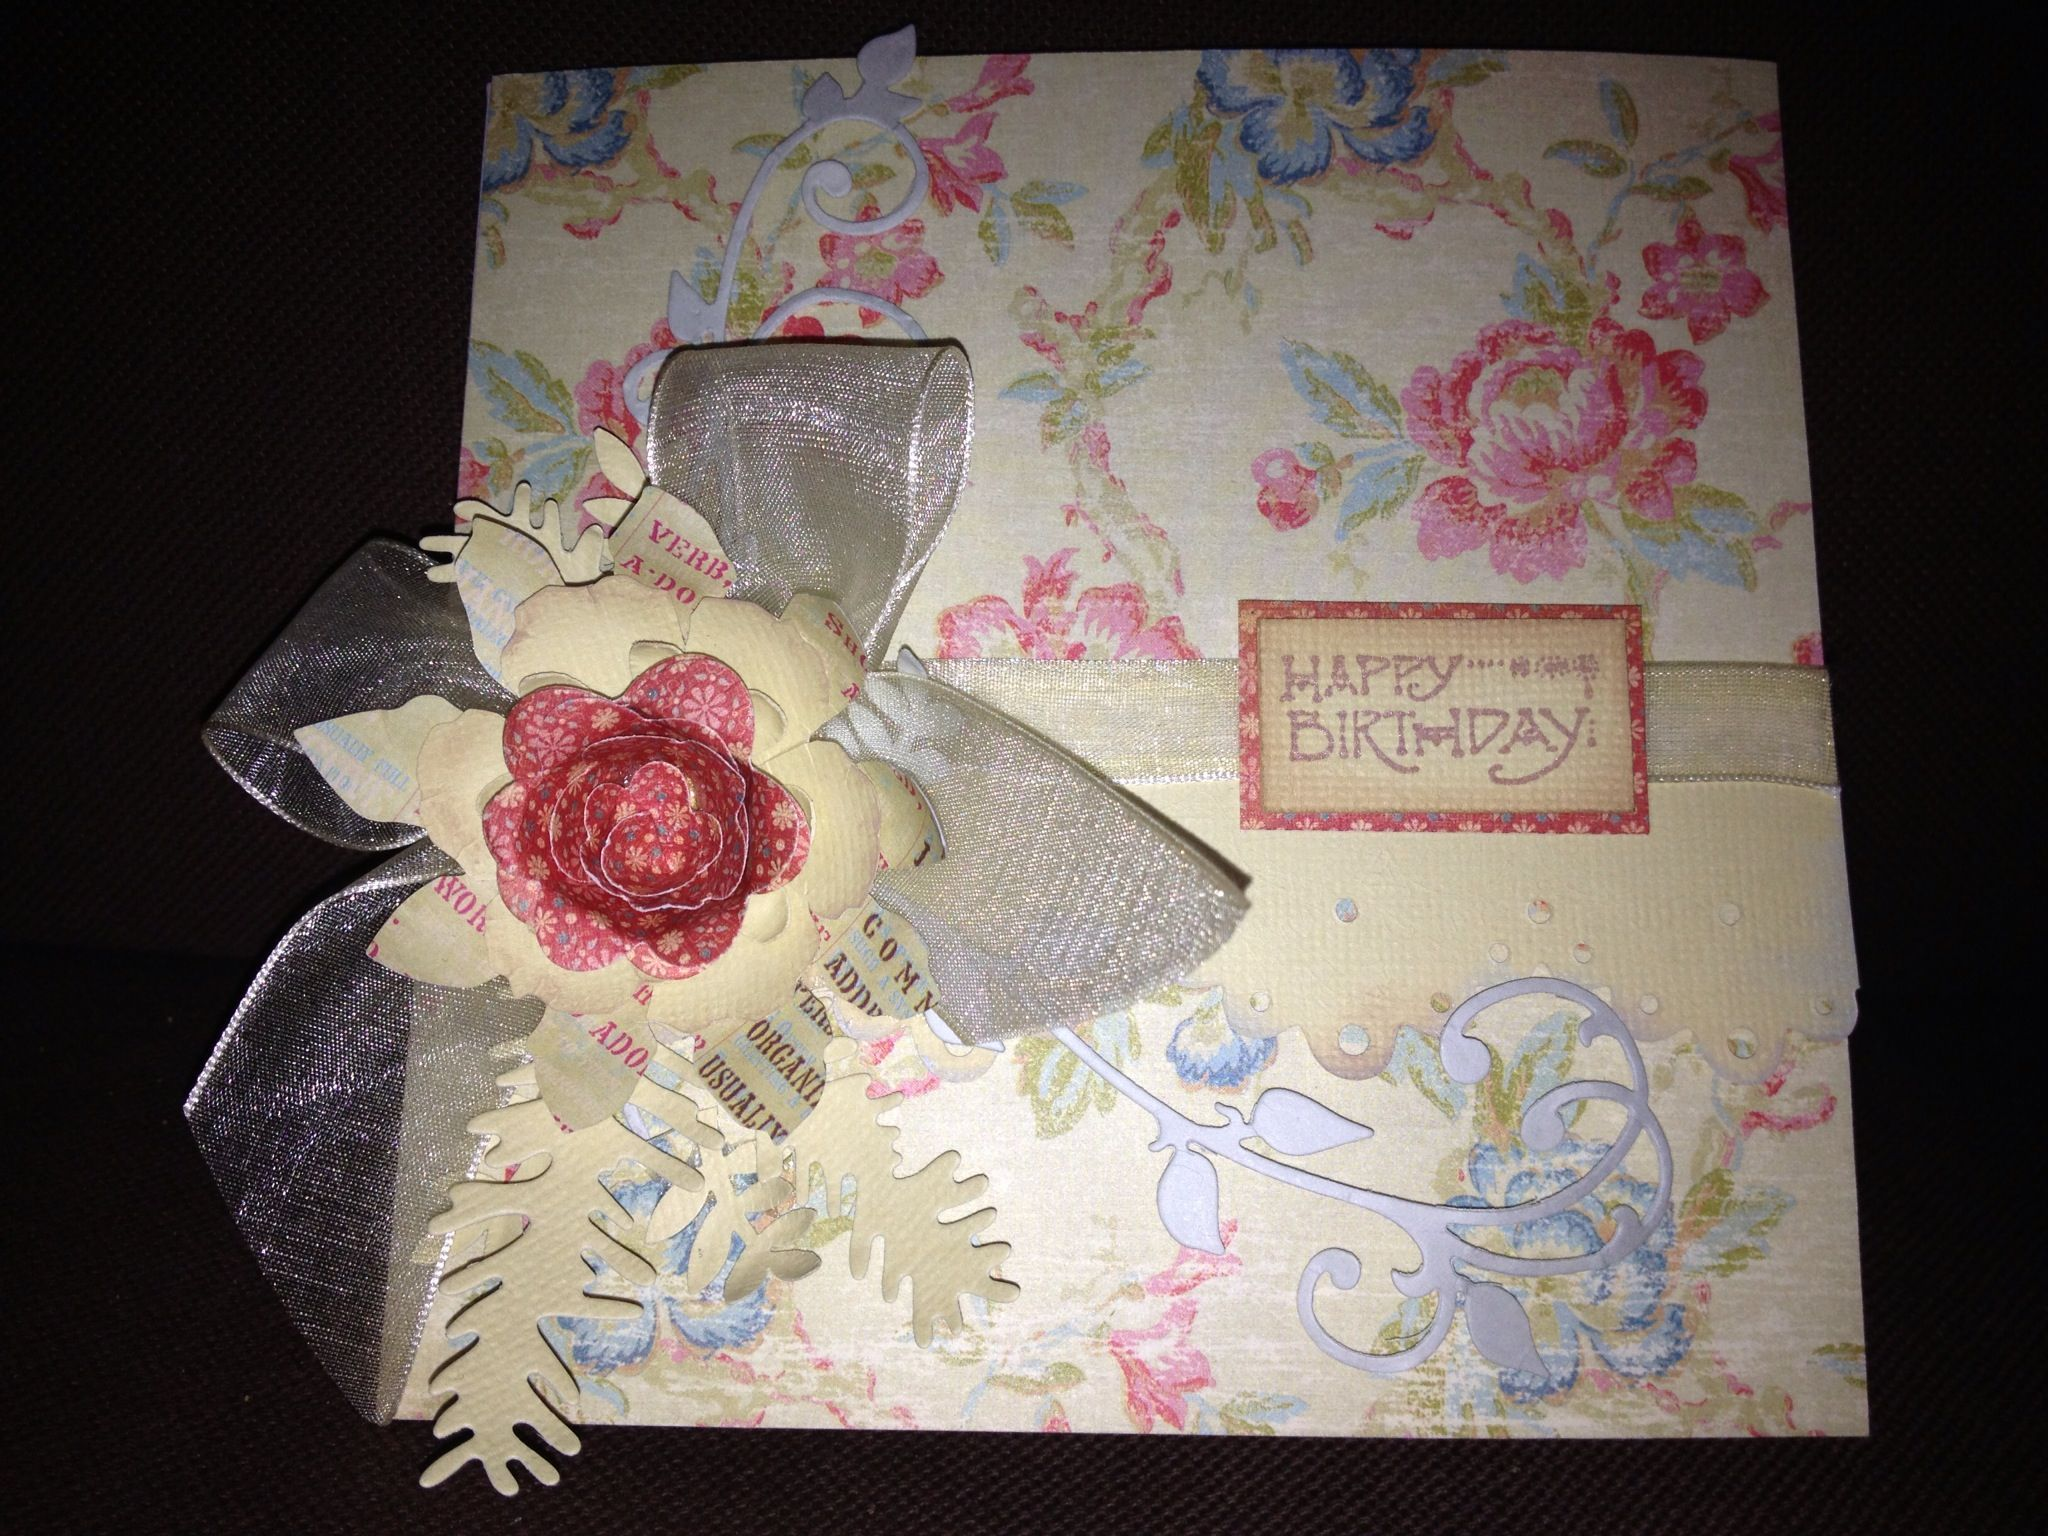 Tim Holtz tattered florals die, Marianne designs rose and xcut border dies. Card by Sherie.